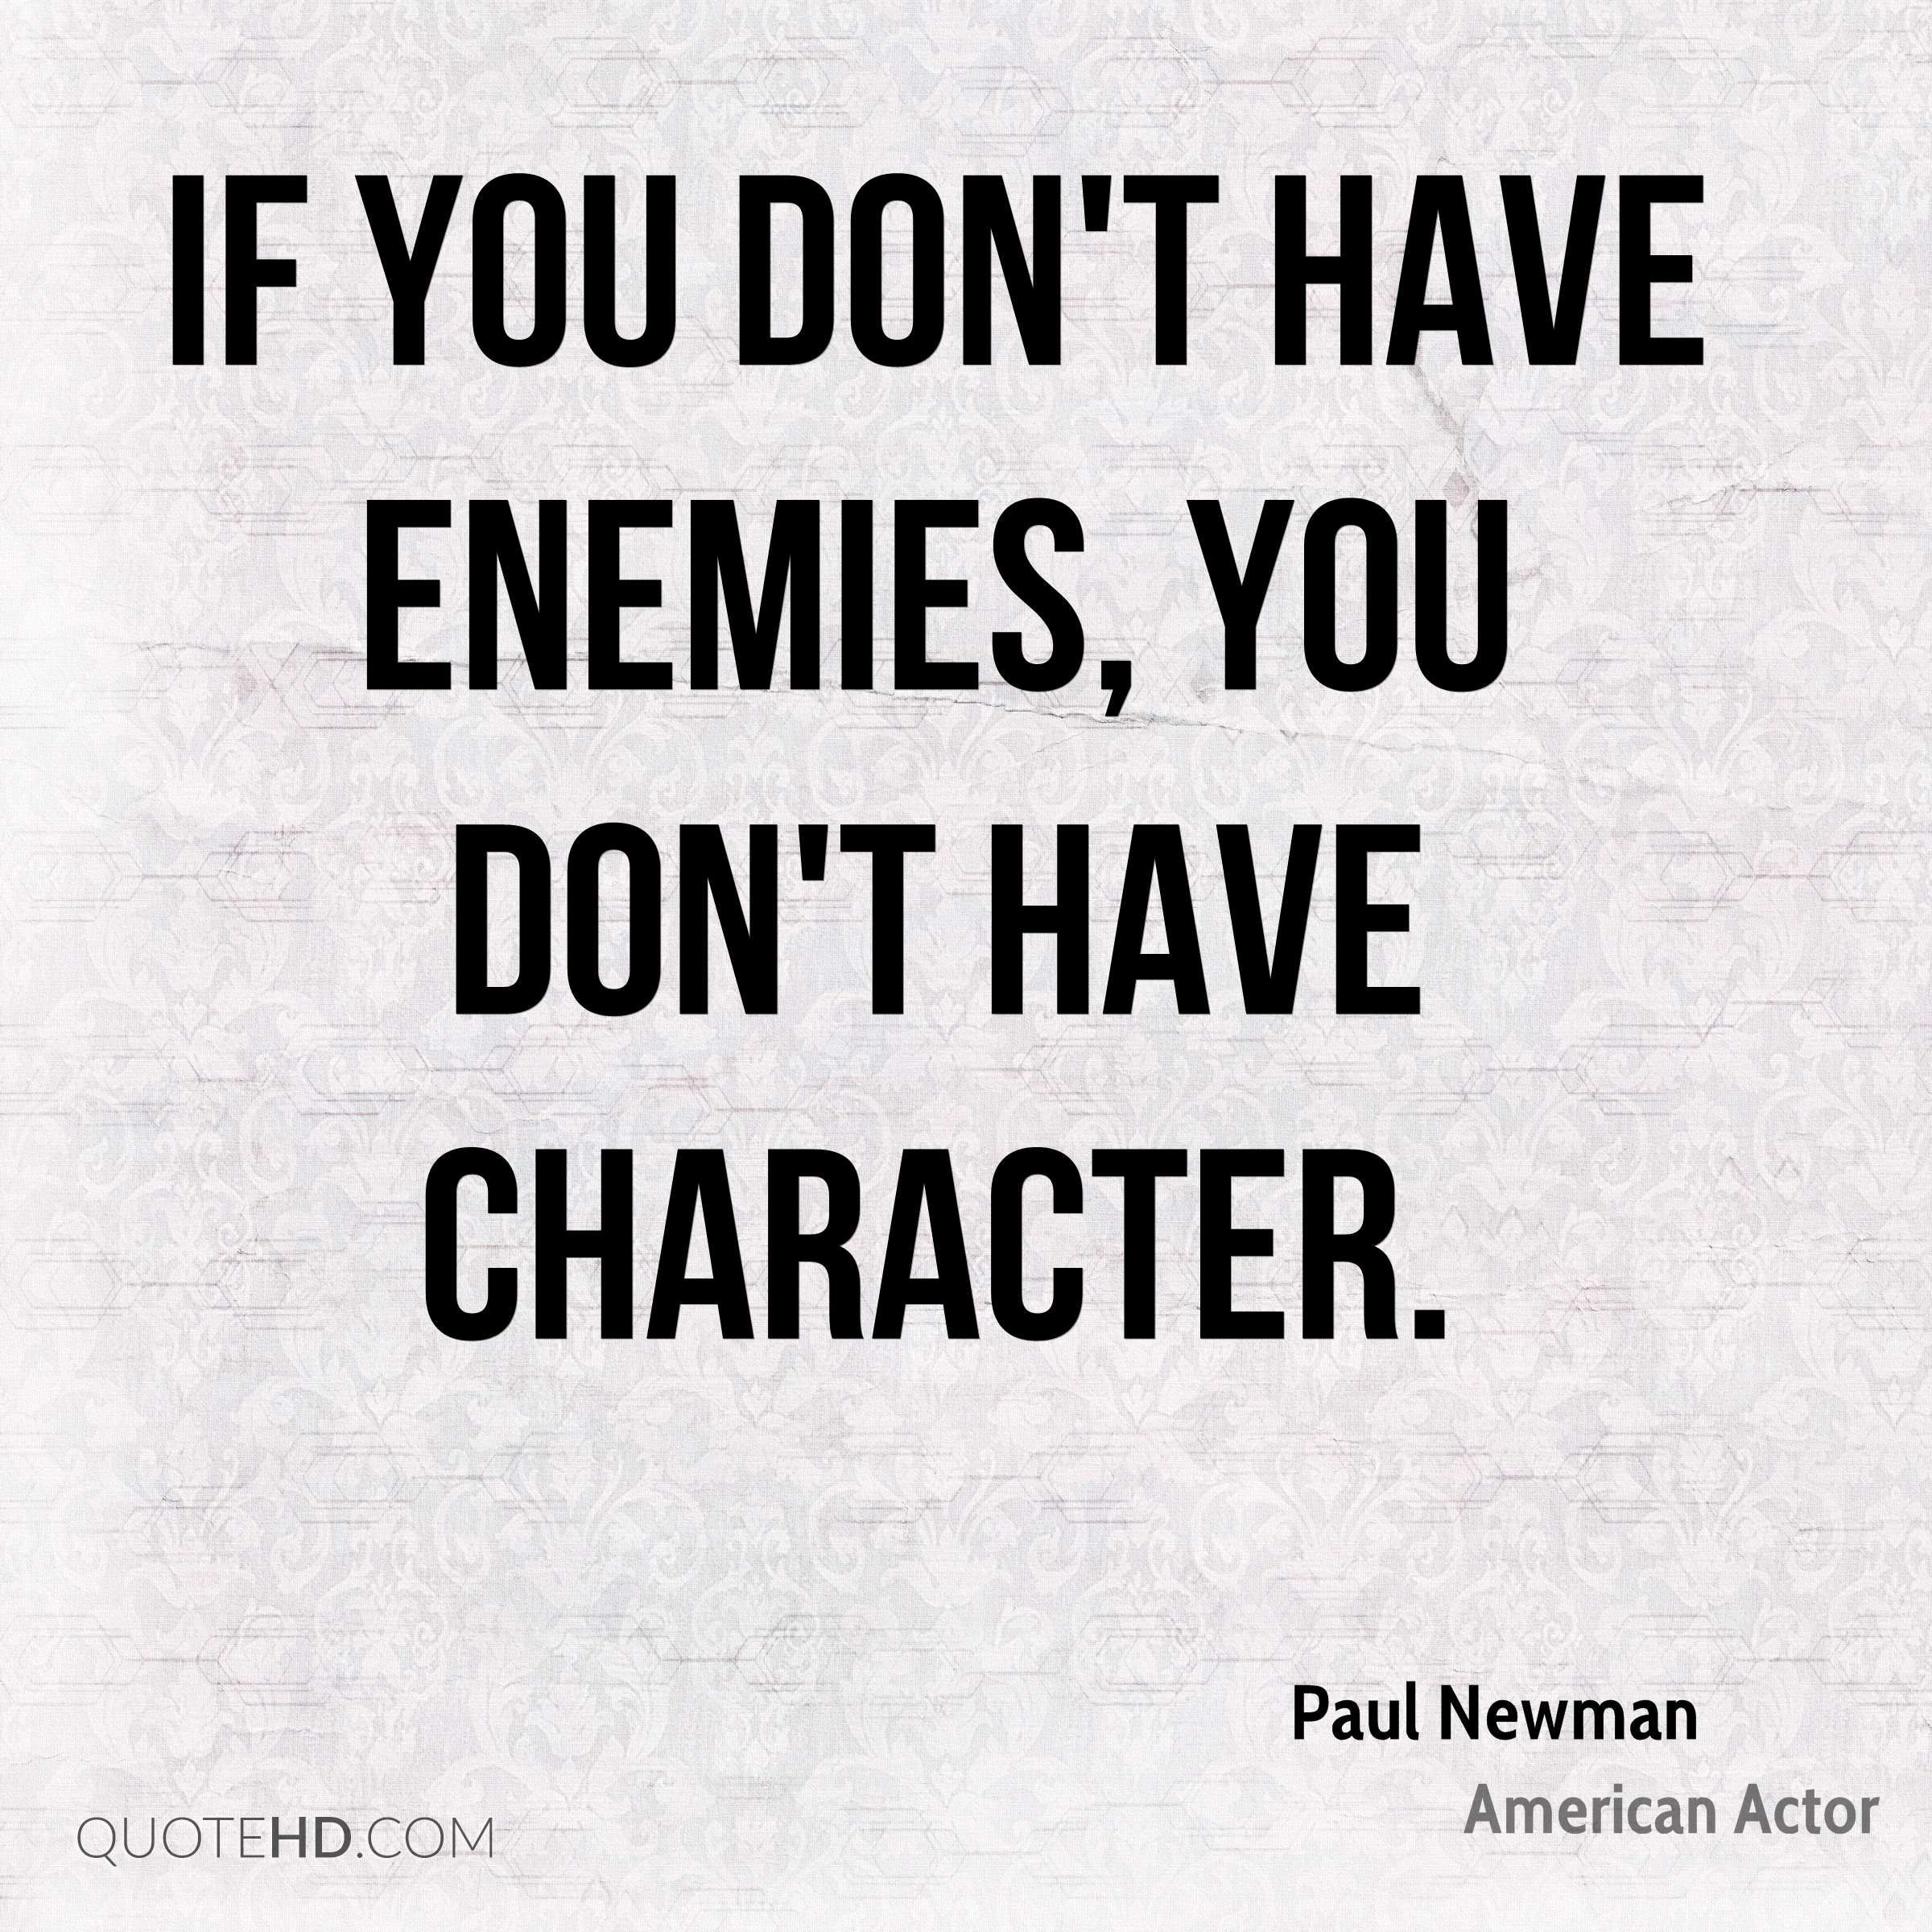 Paul Newman Quotes Enemies Quotes Paul Newman Quotes Actor Quotes